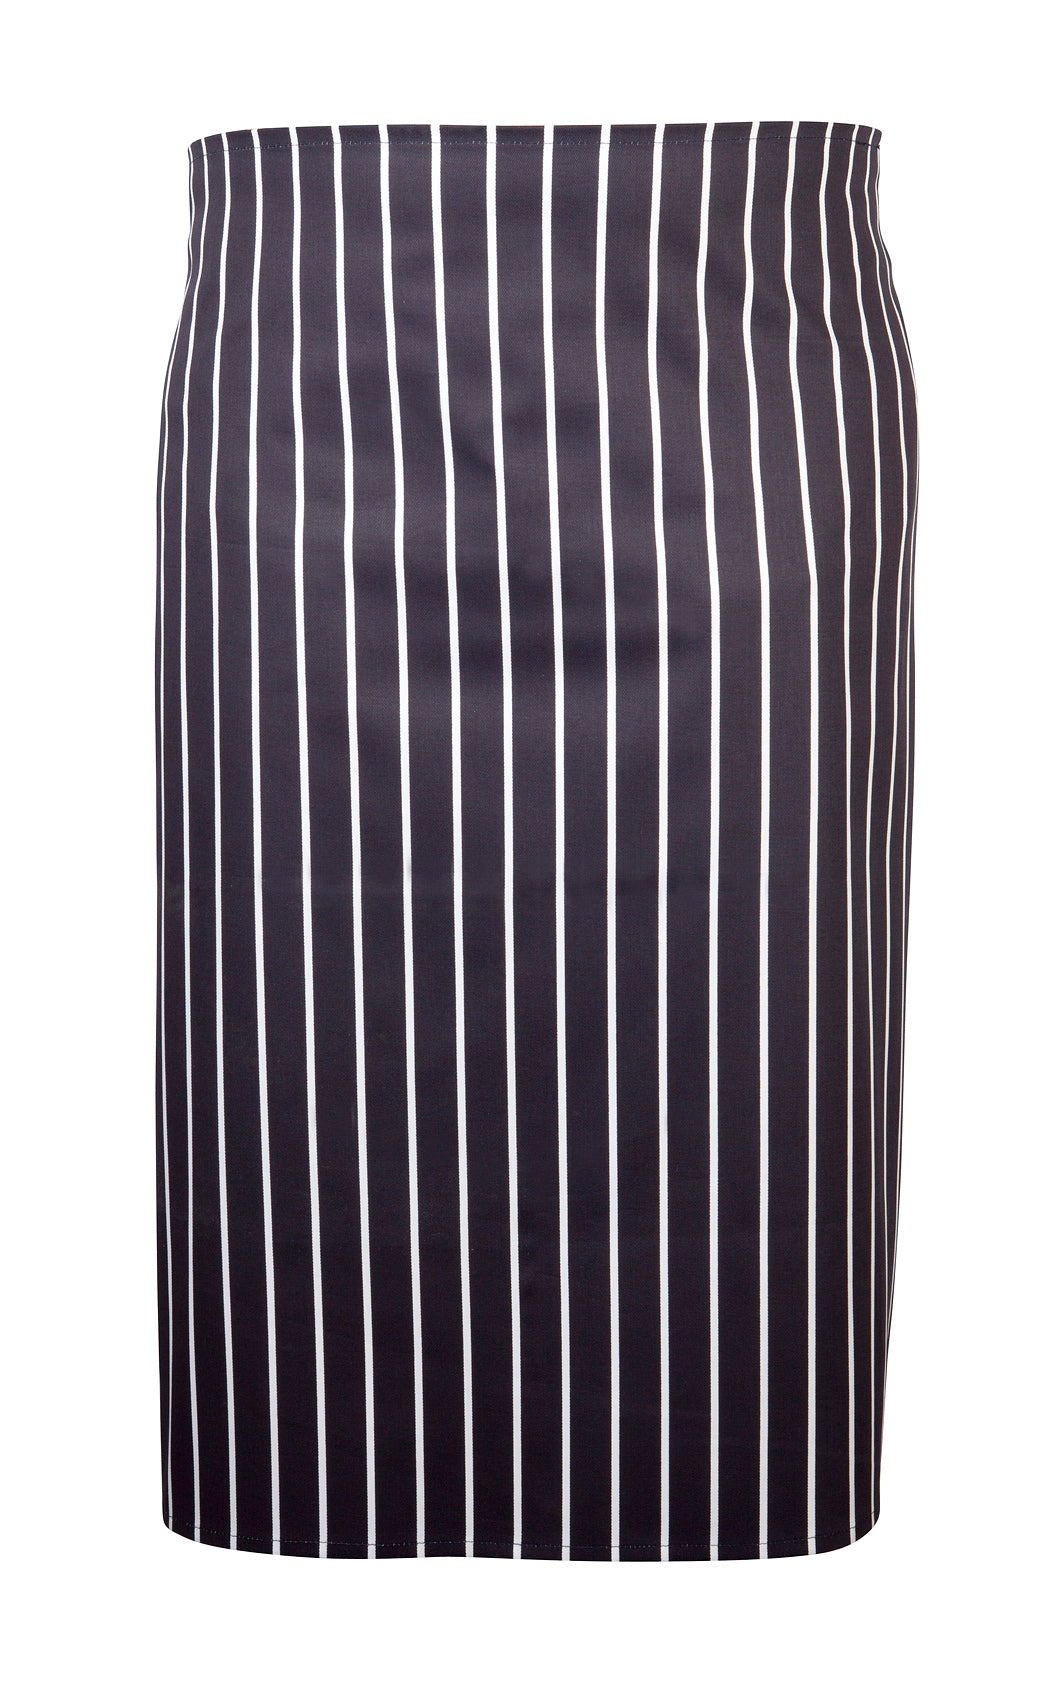 Navy Butchers Stripe Waist Apron 71cm X 76cm